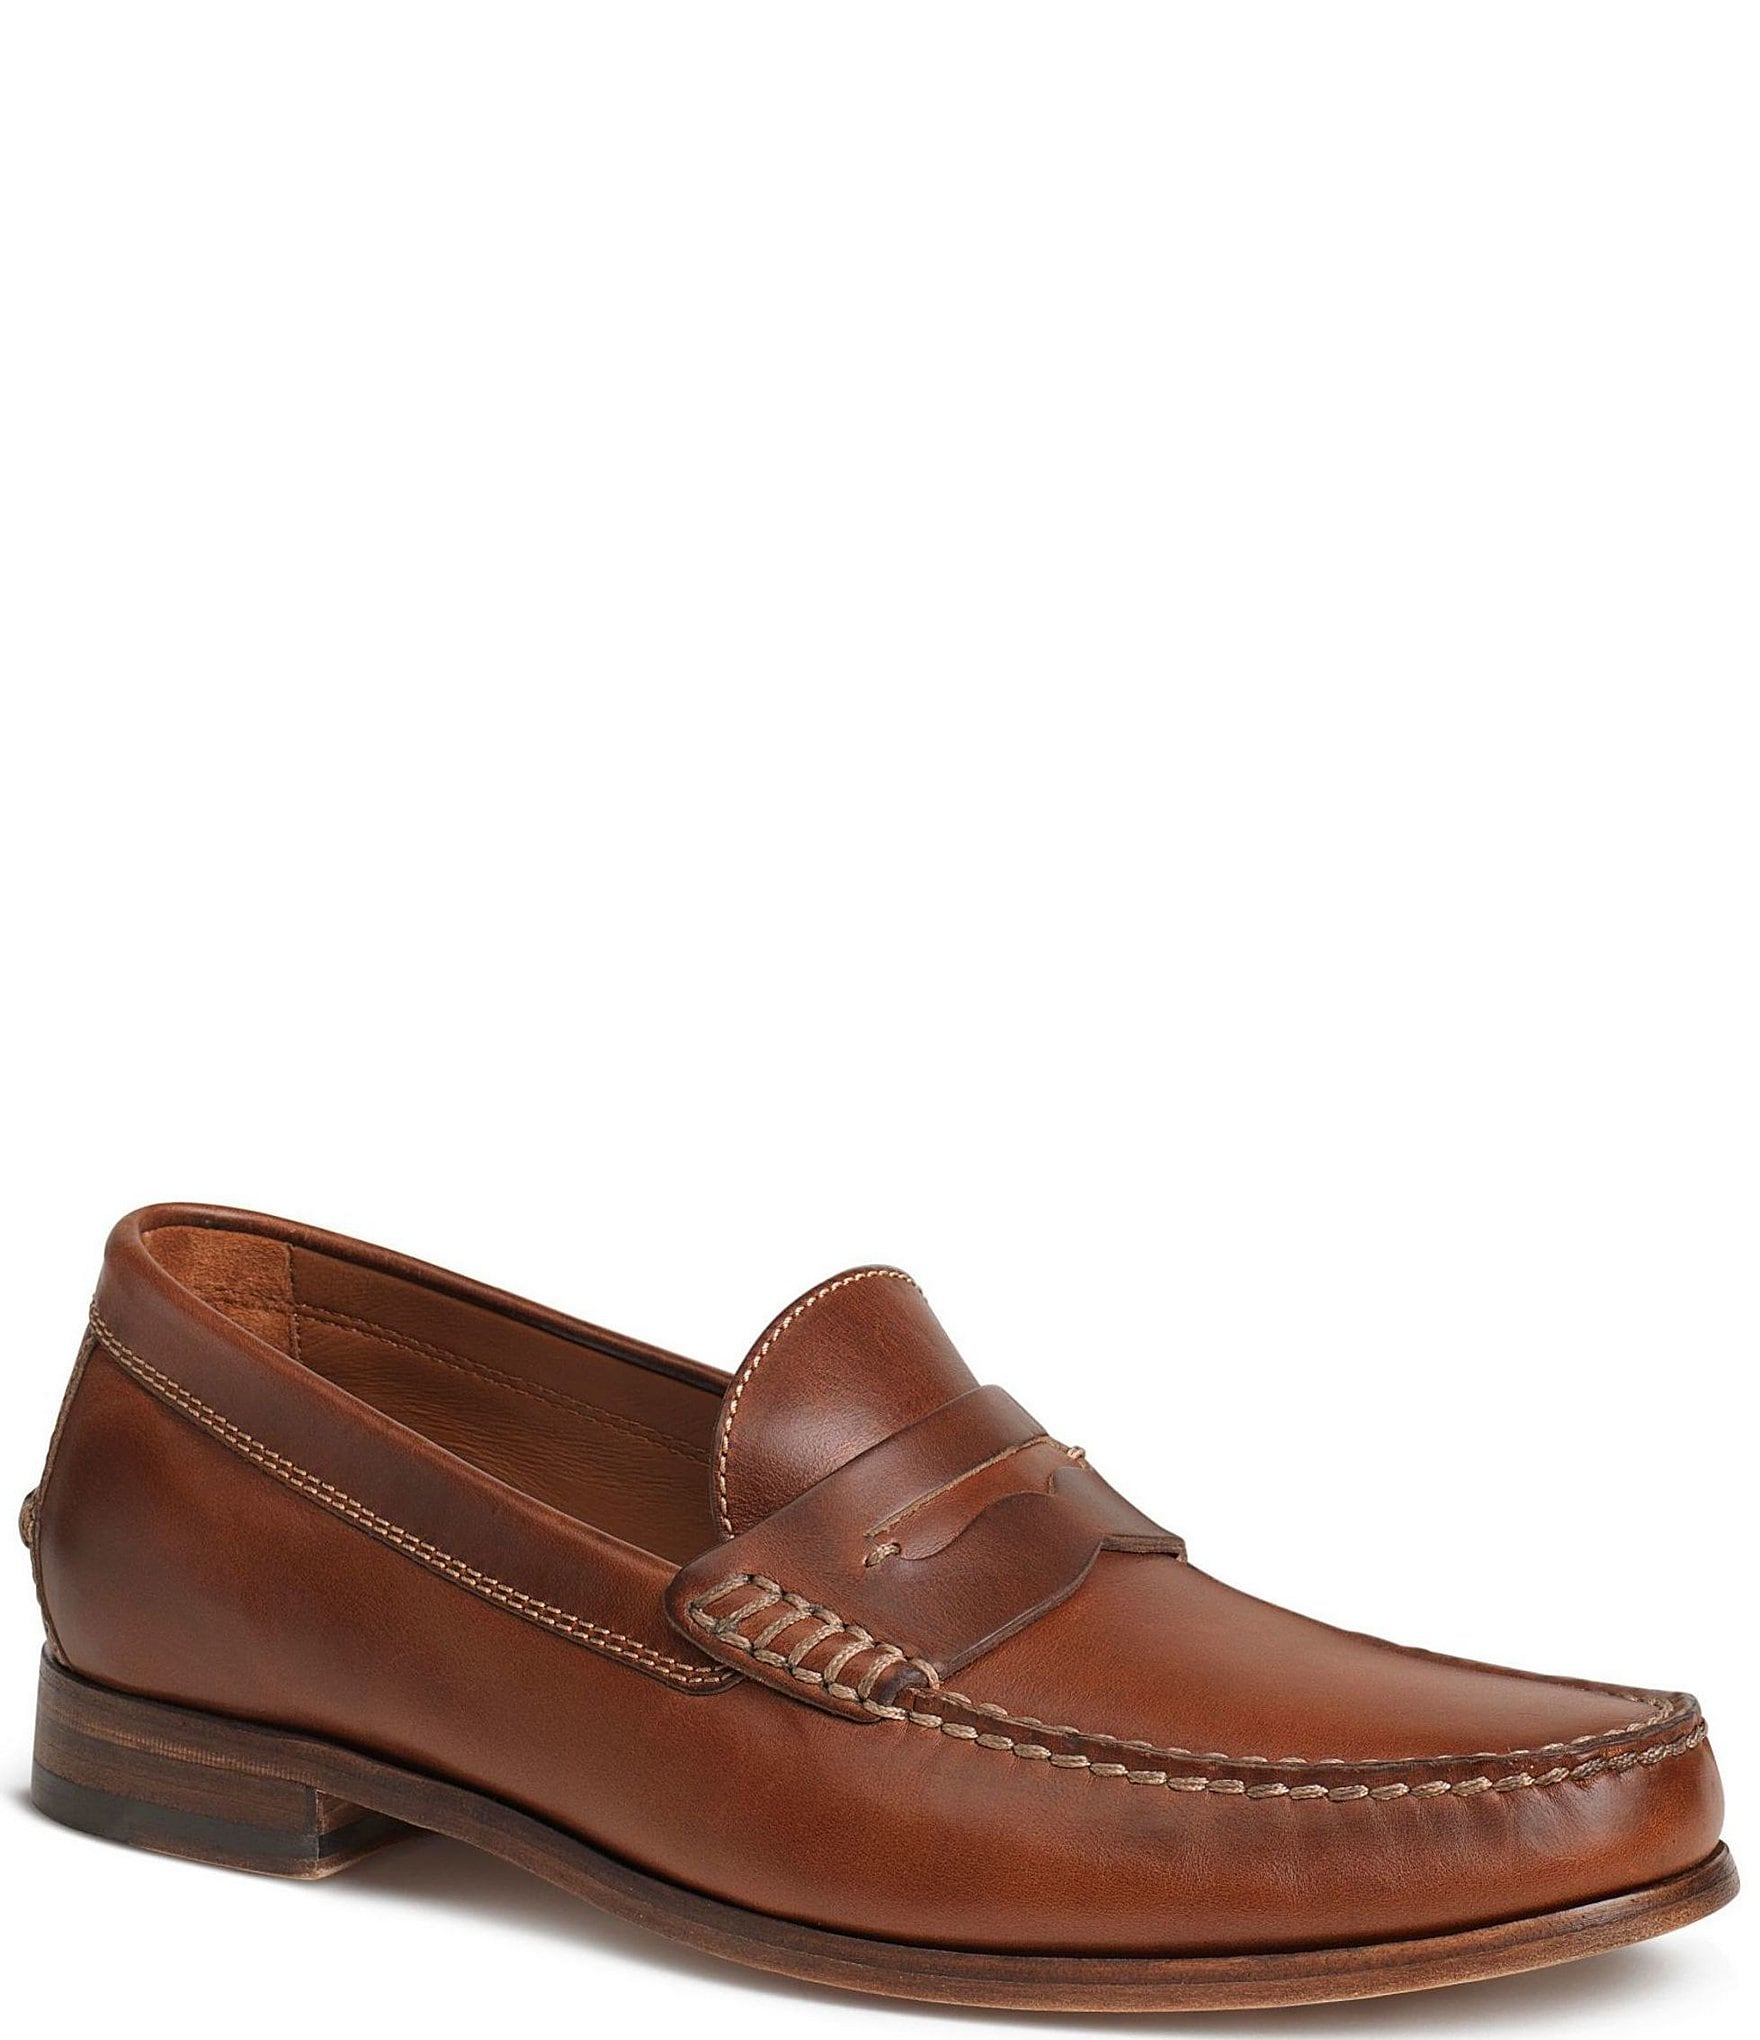 b542ff05576 Trask Men s Sadler American Steer Penny Loafers